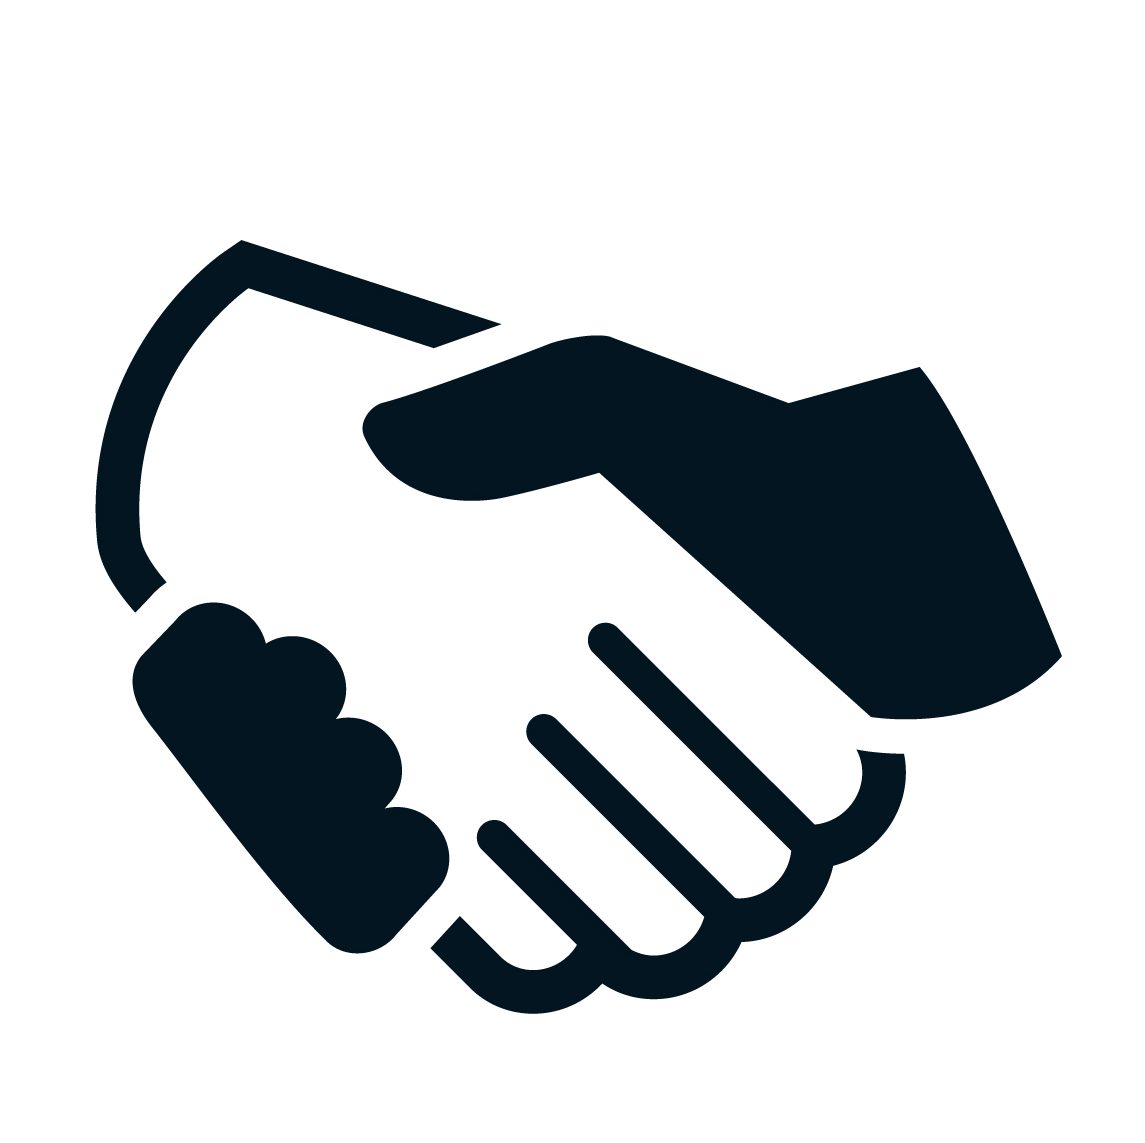 Example for the handshake icon element of the logo.